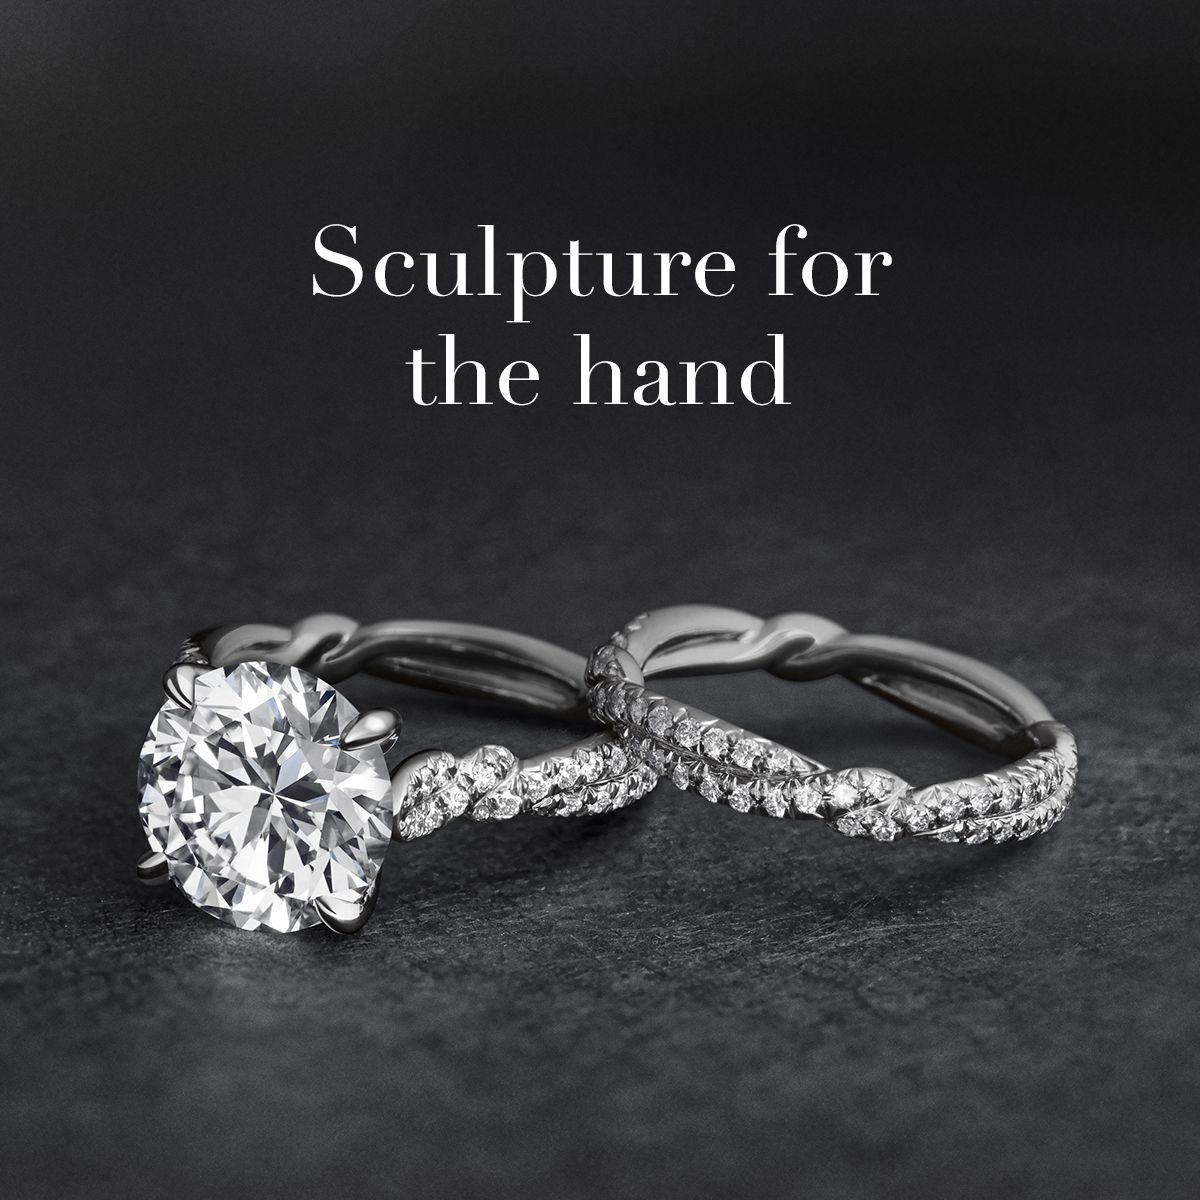 DY Wisteria rings in platinum. Wedding rings engagement